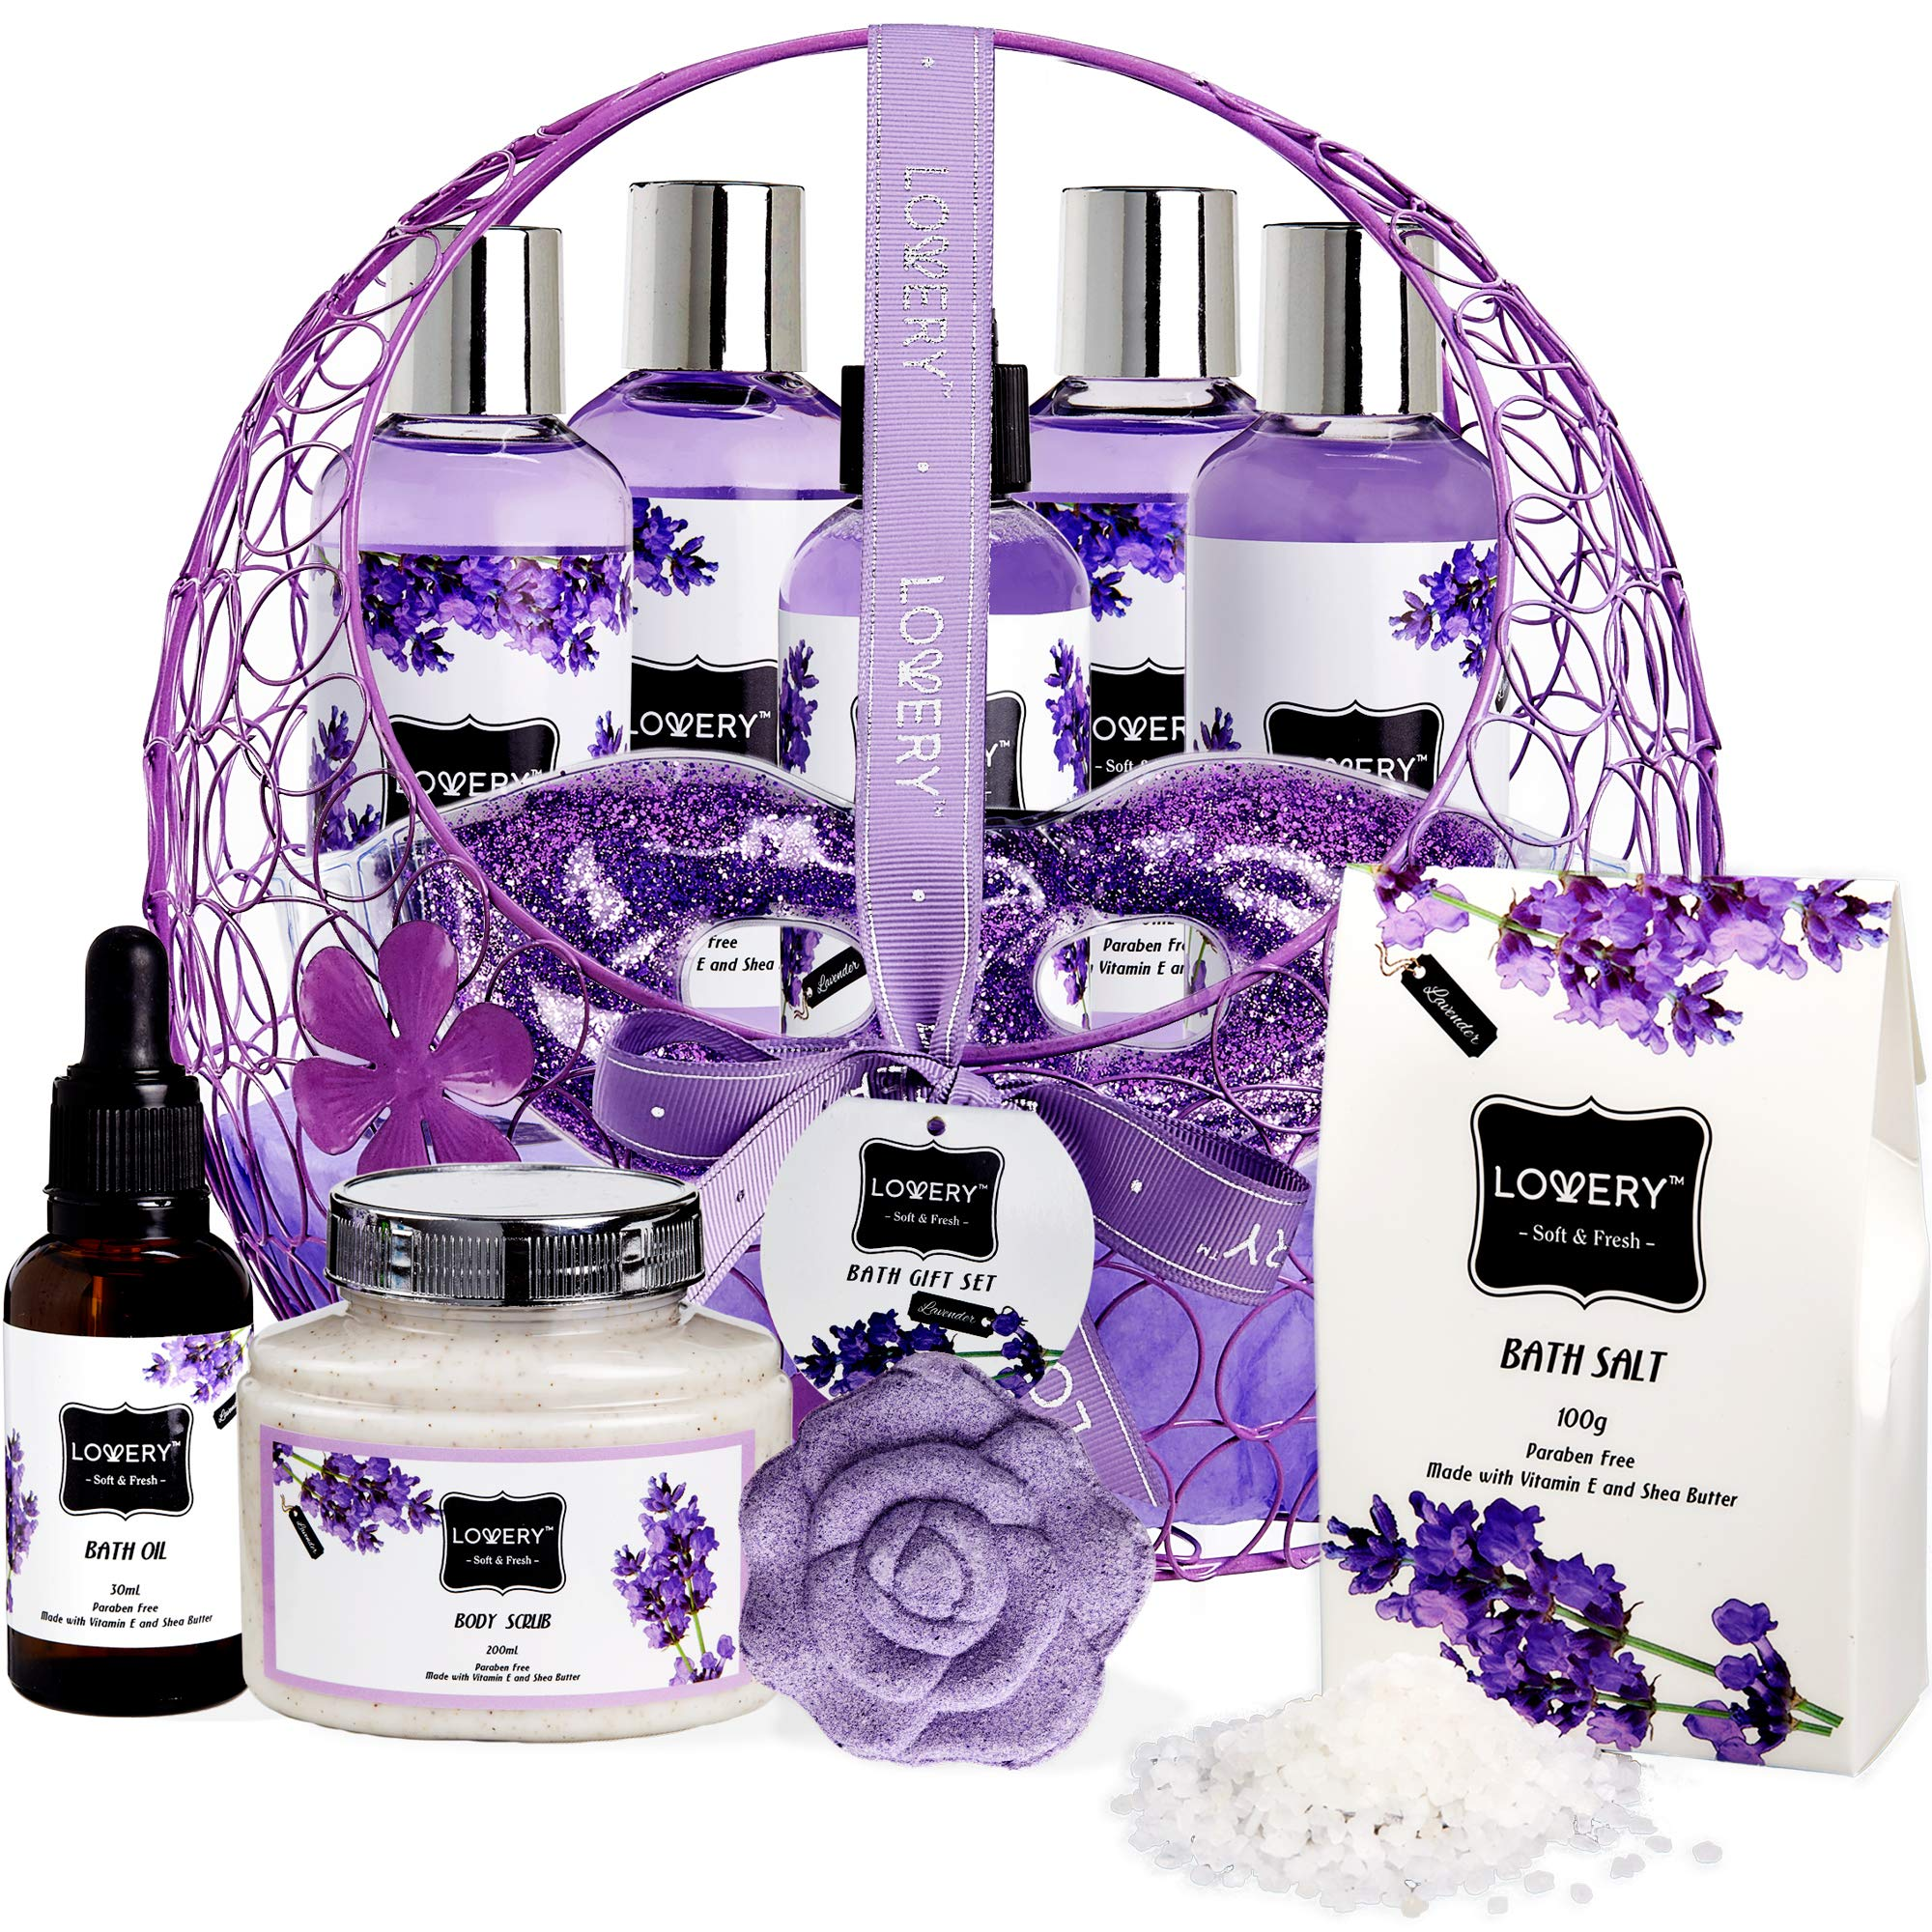 Bath and Body Gift For Women and Men - Hot and Cold Gel Eye Mask, Lavender and Jasmine Deluxe Home Spa Set with Bath Bombs, Massage Oil, Purple Wired Candy Dish and Much More - 12 Piece Set by LOVERY